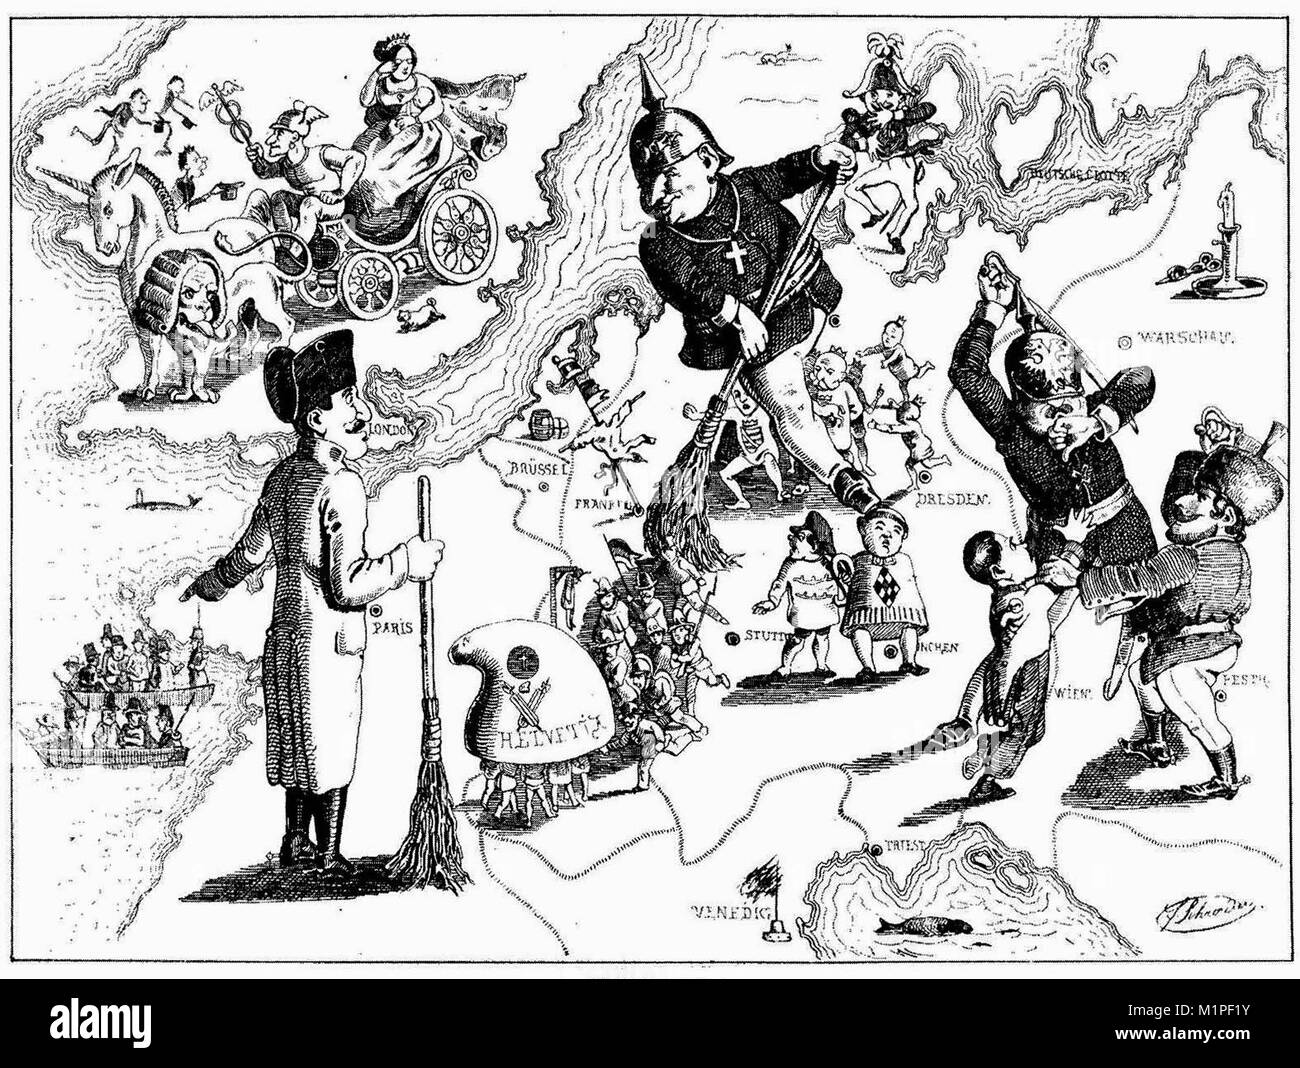 A caricature by Ferdinand Schröder on the defeat of the revolutions of 1848/49 in Europe - Stock Image